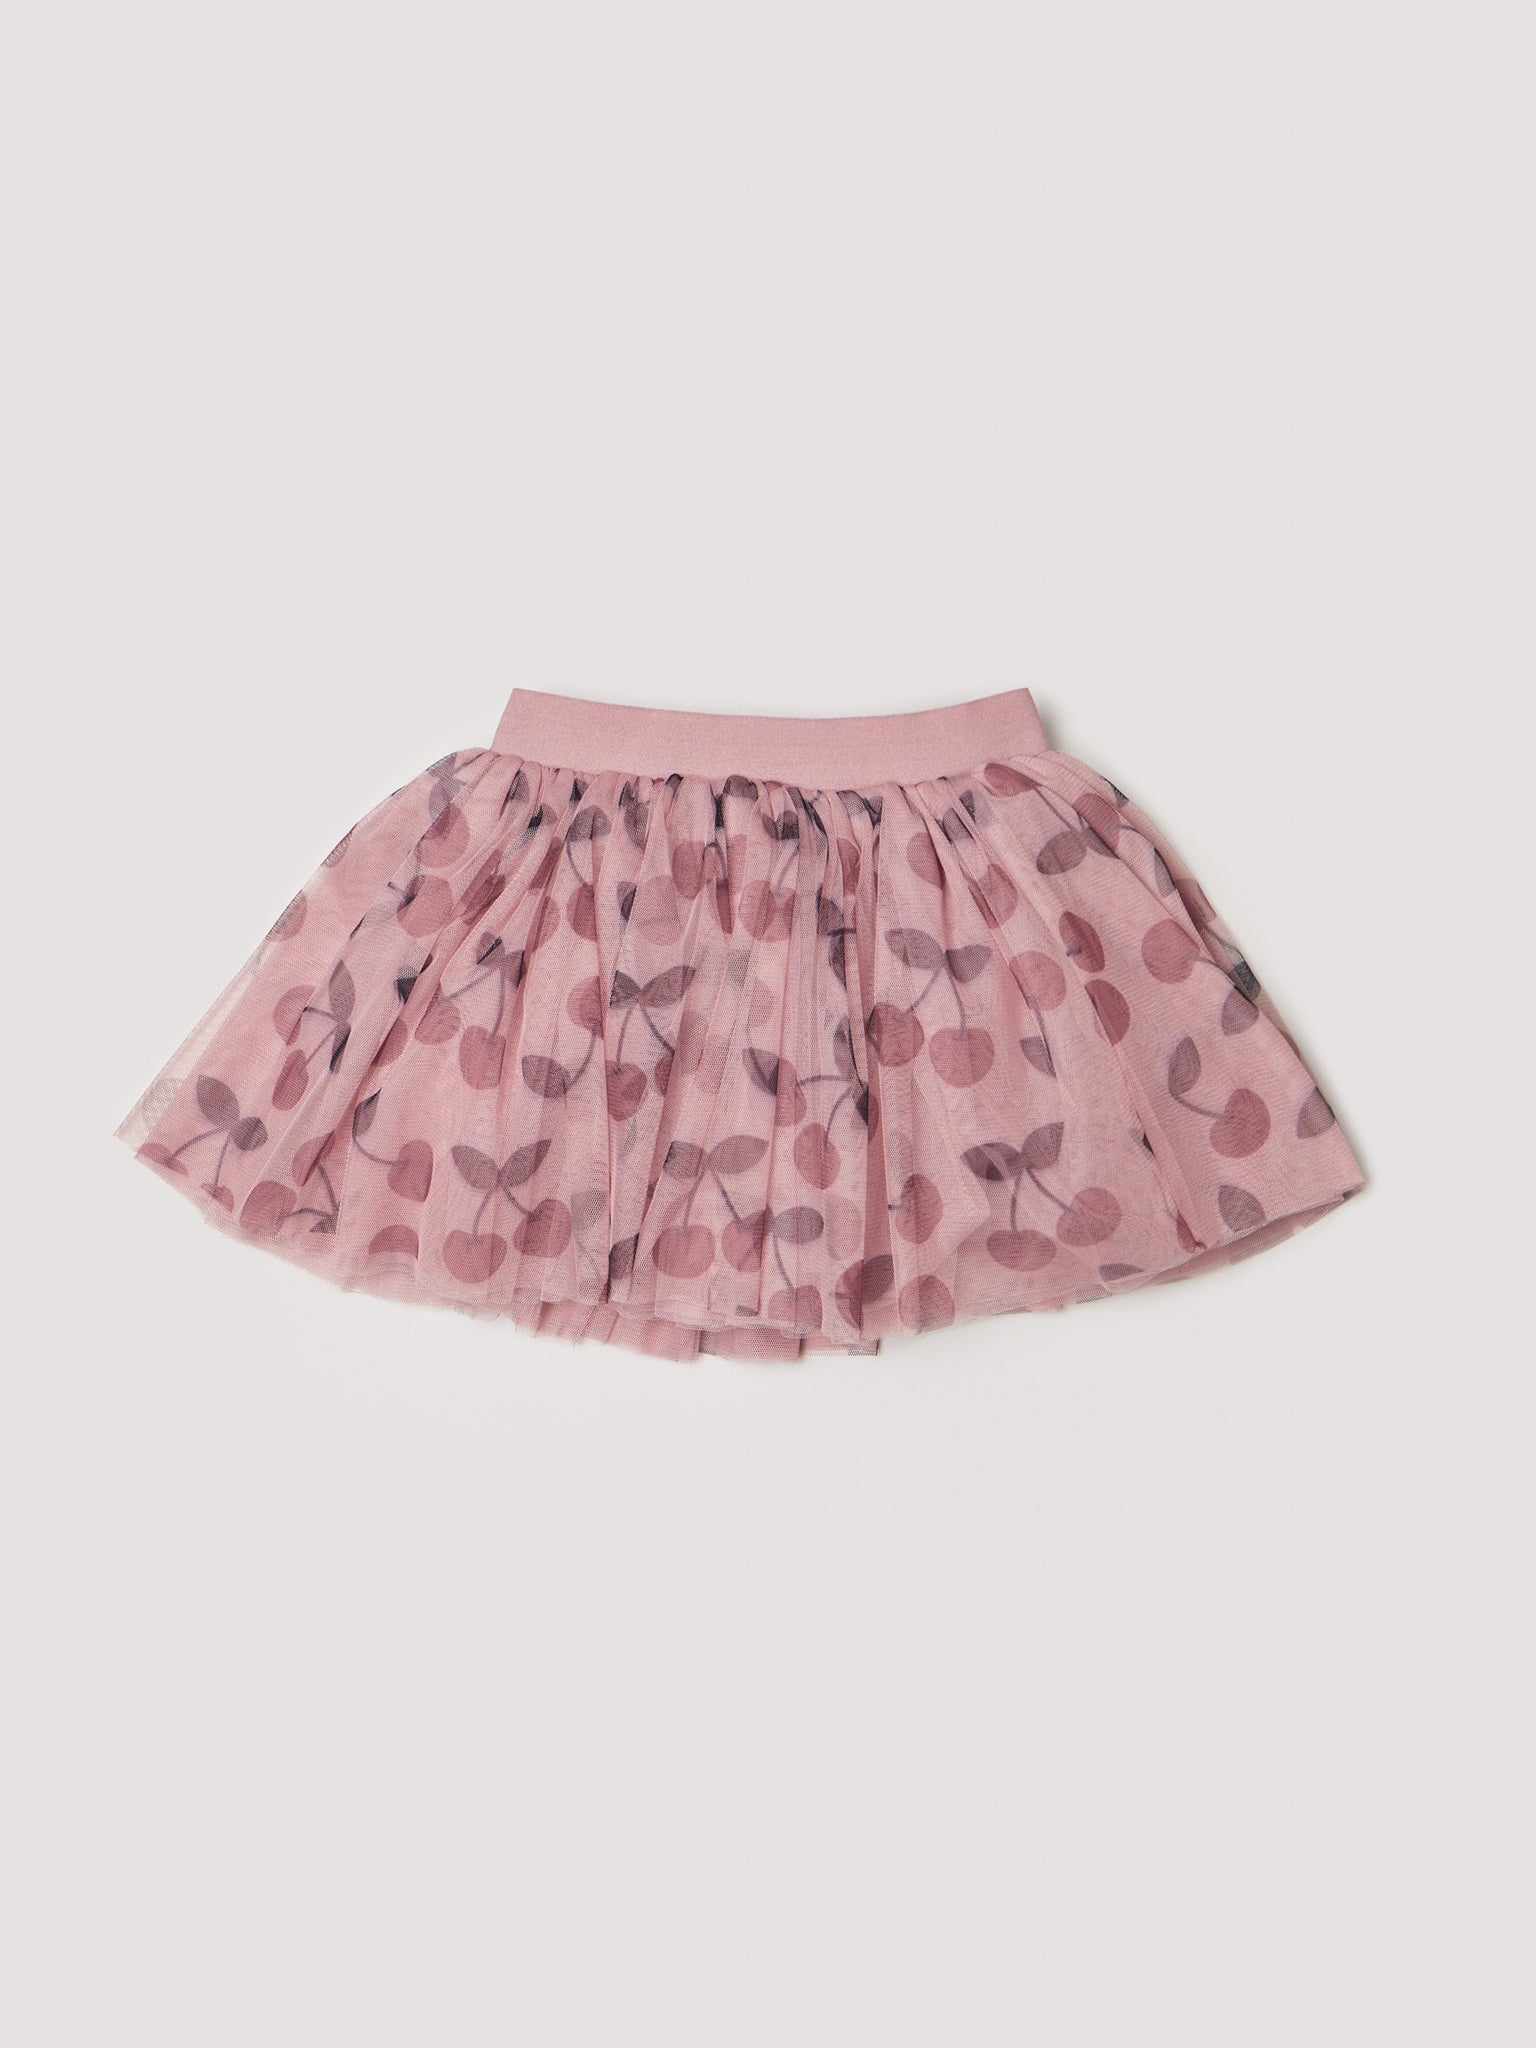 HUXBABY Cherry Skirt